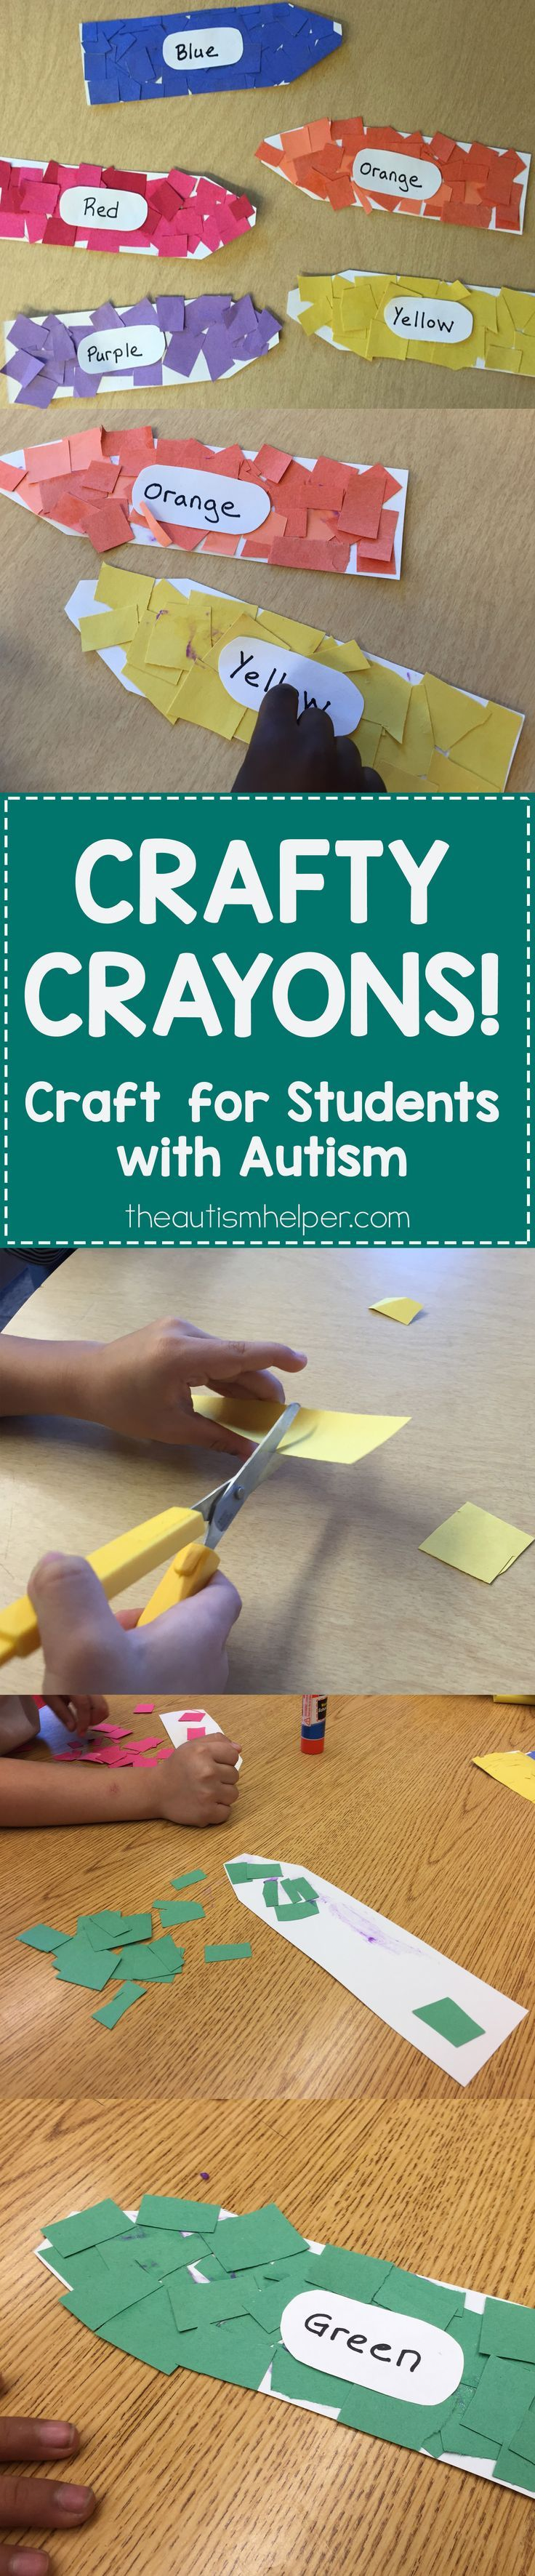 522 best Preschool special education images on Pinterest | Teaching ...